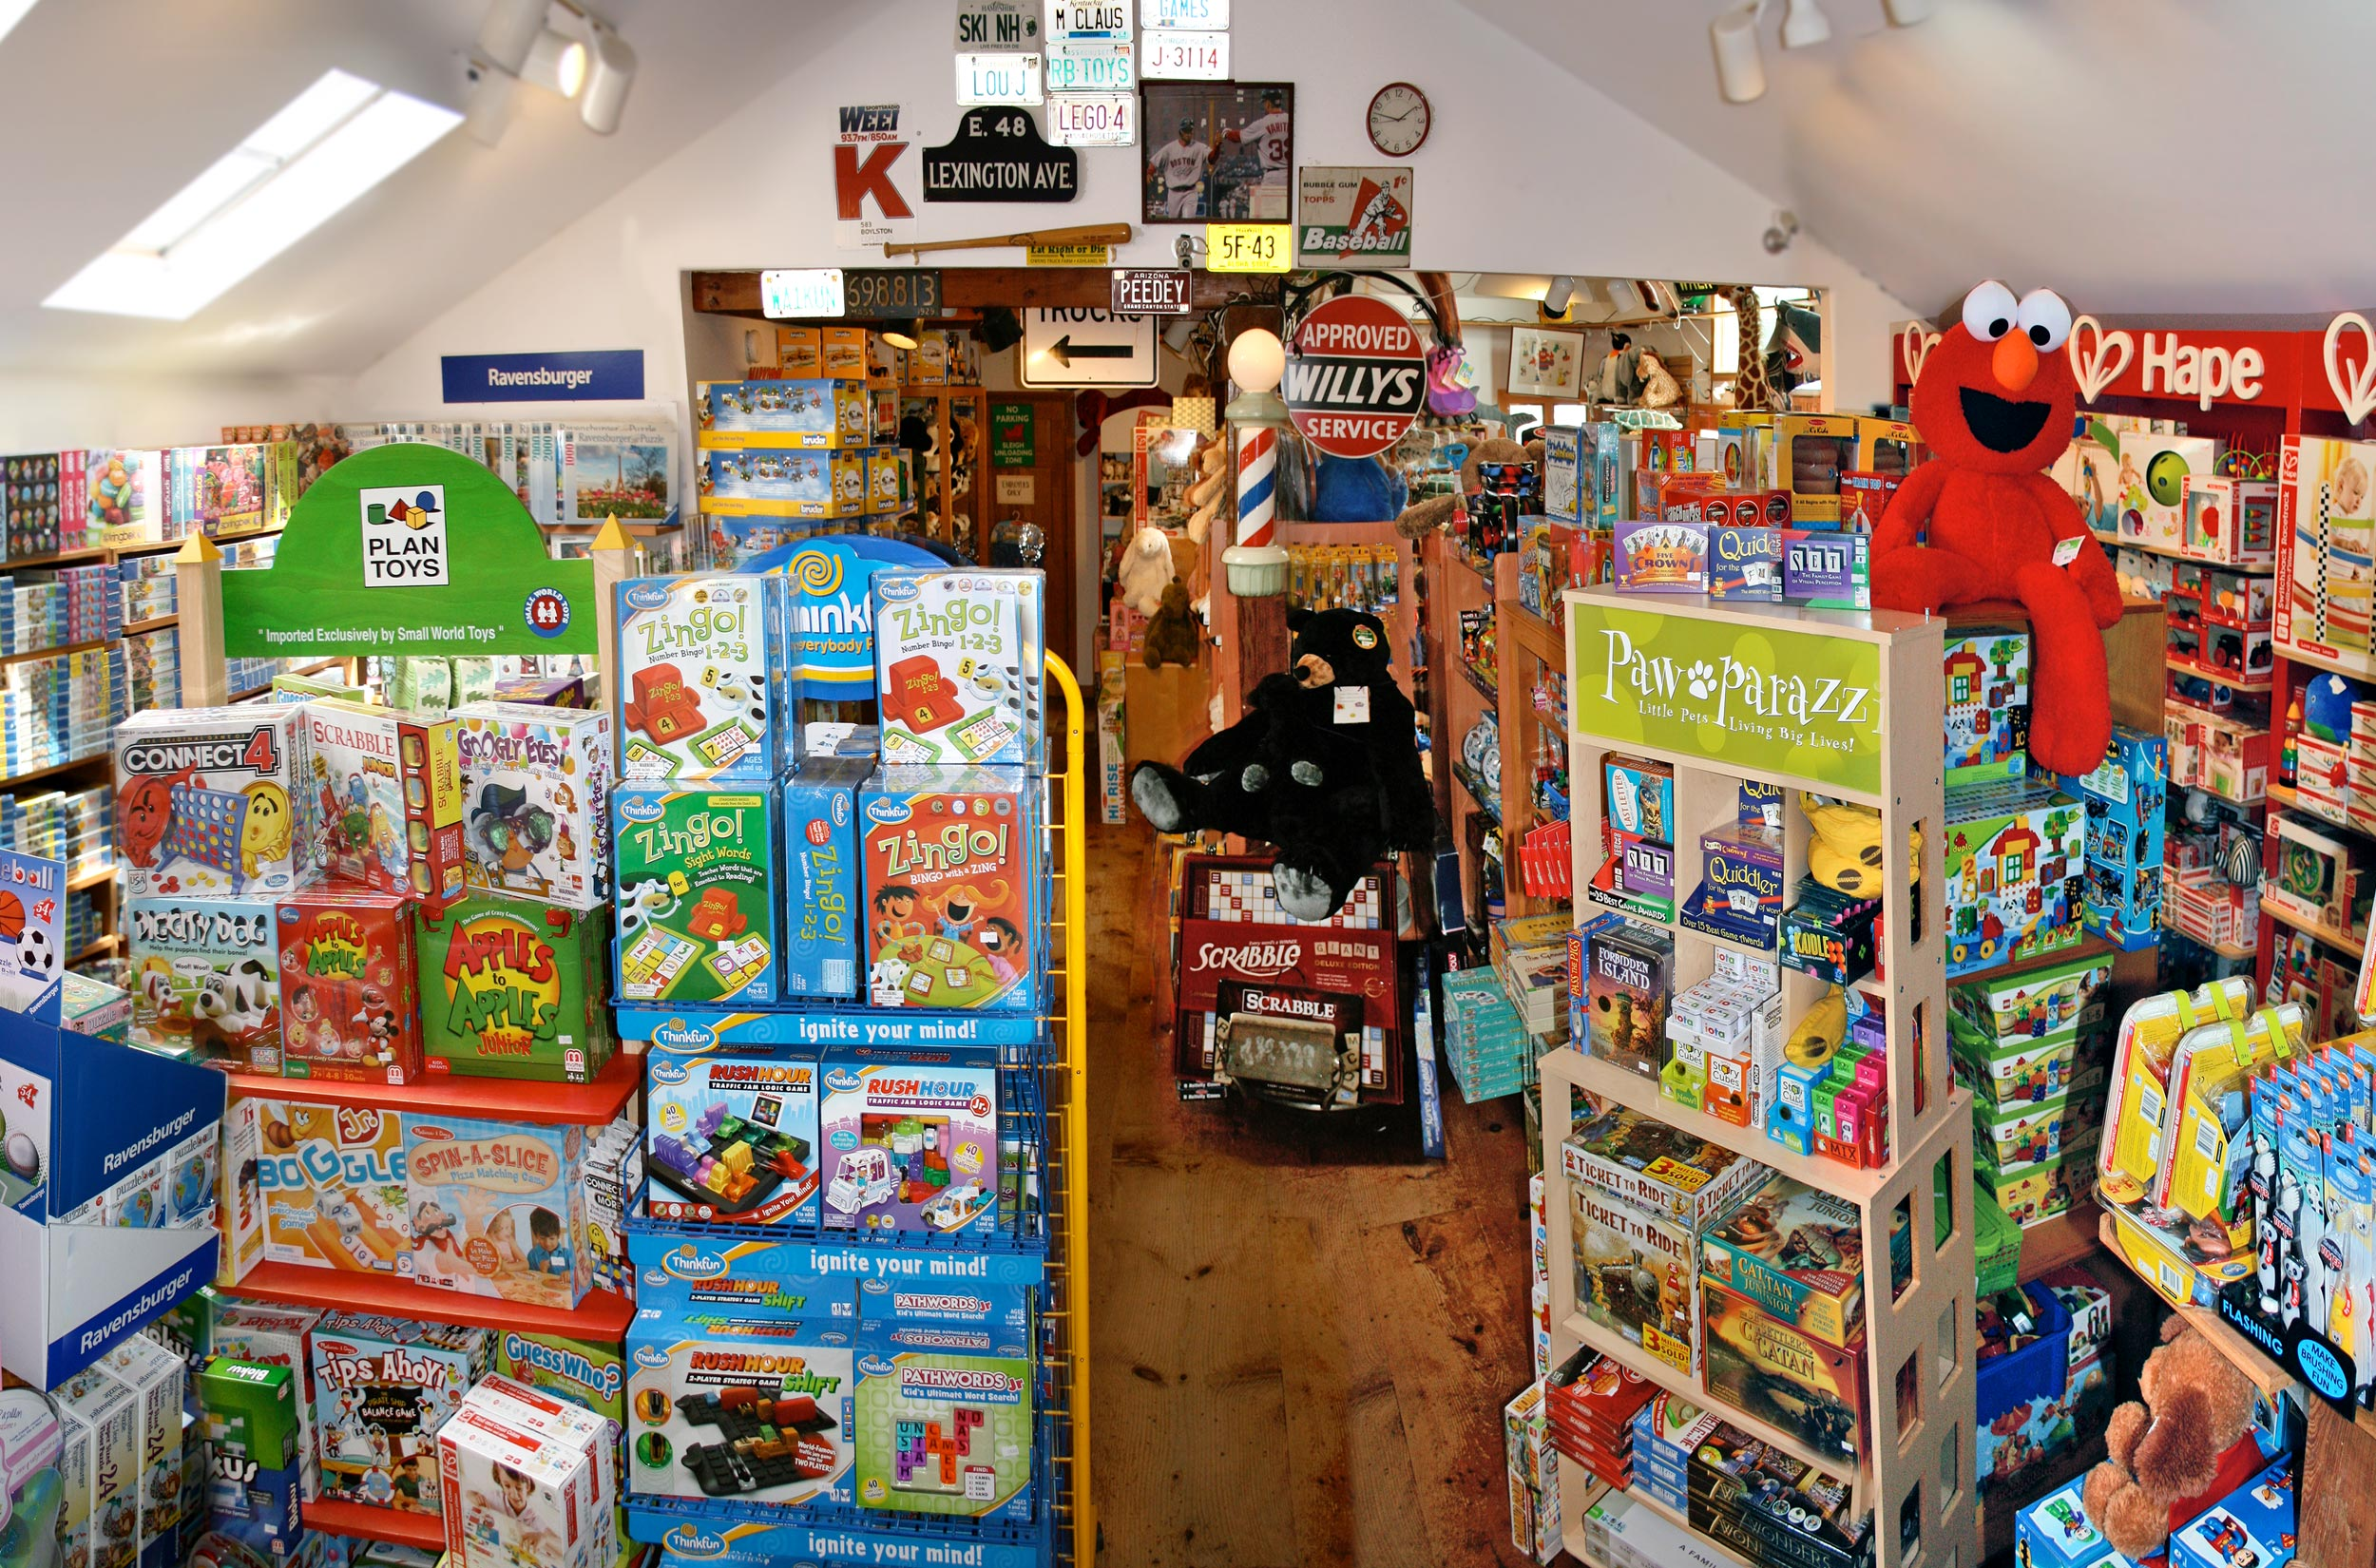 The-Red-Balloon-Toy-Shop-Cape-Cod-Toys.jpg